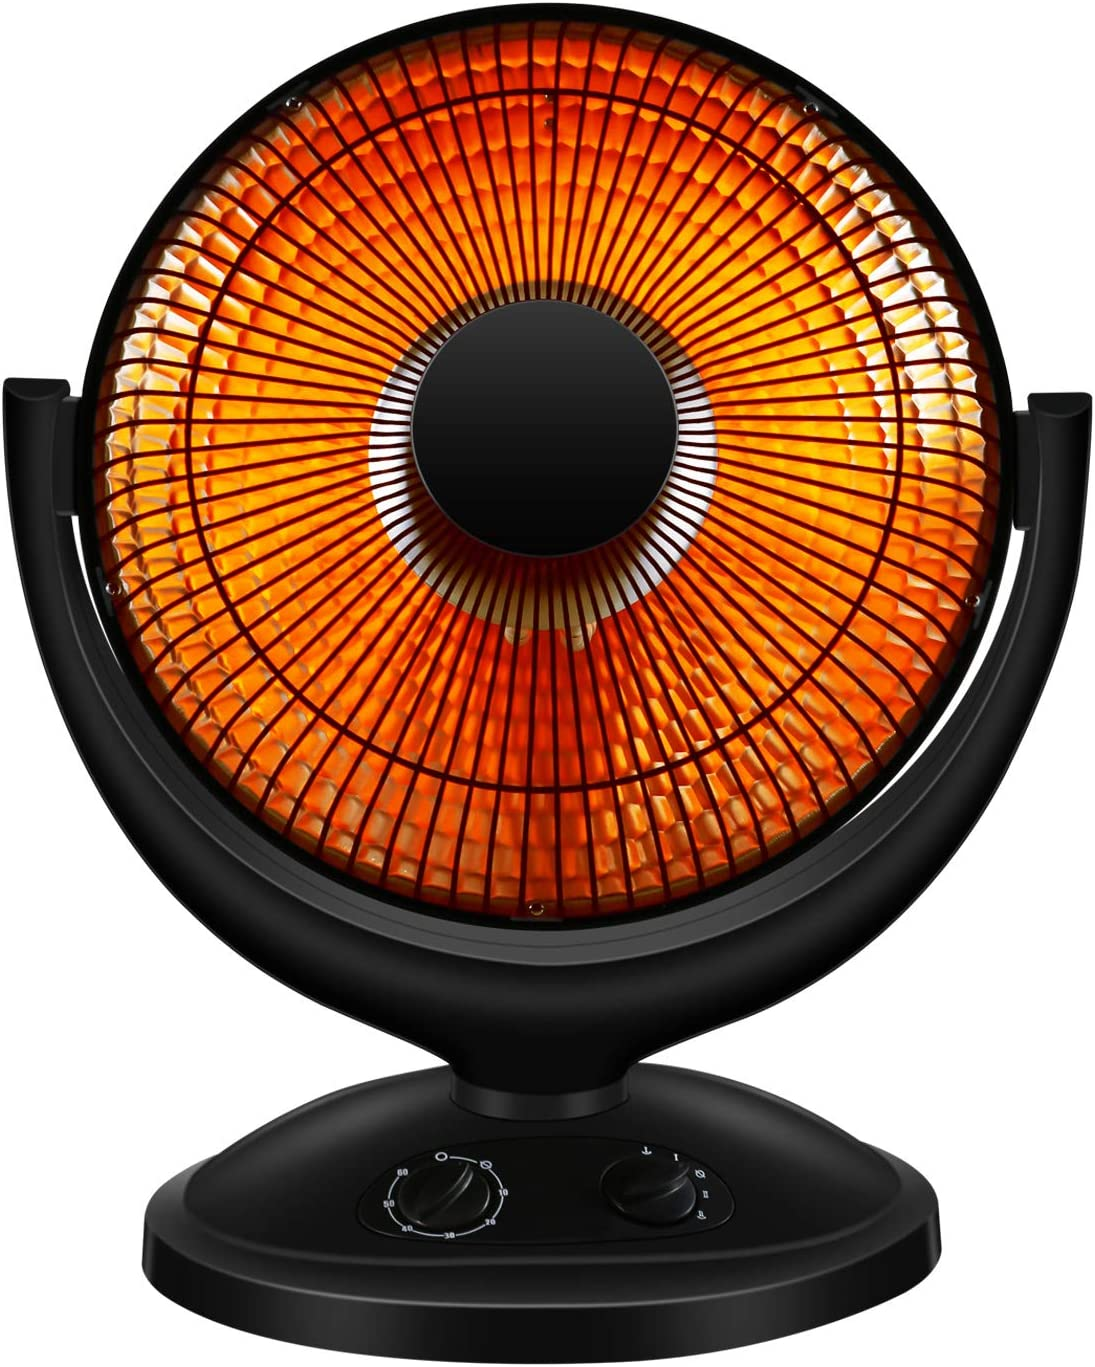 RMYHOME Space Heater, Electric Portable Heater for Home and Office, Dish Heater with Adjustable Tilt, 2 Heat Settings, Tip-Over and Overheating Protection